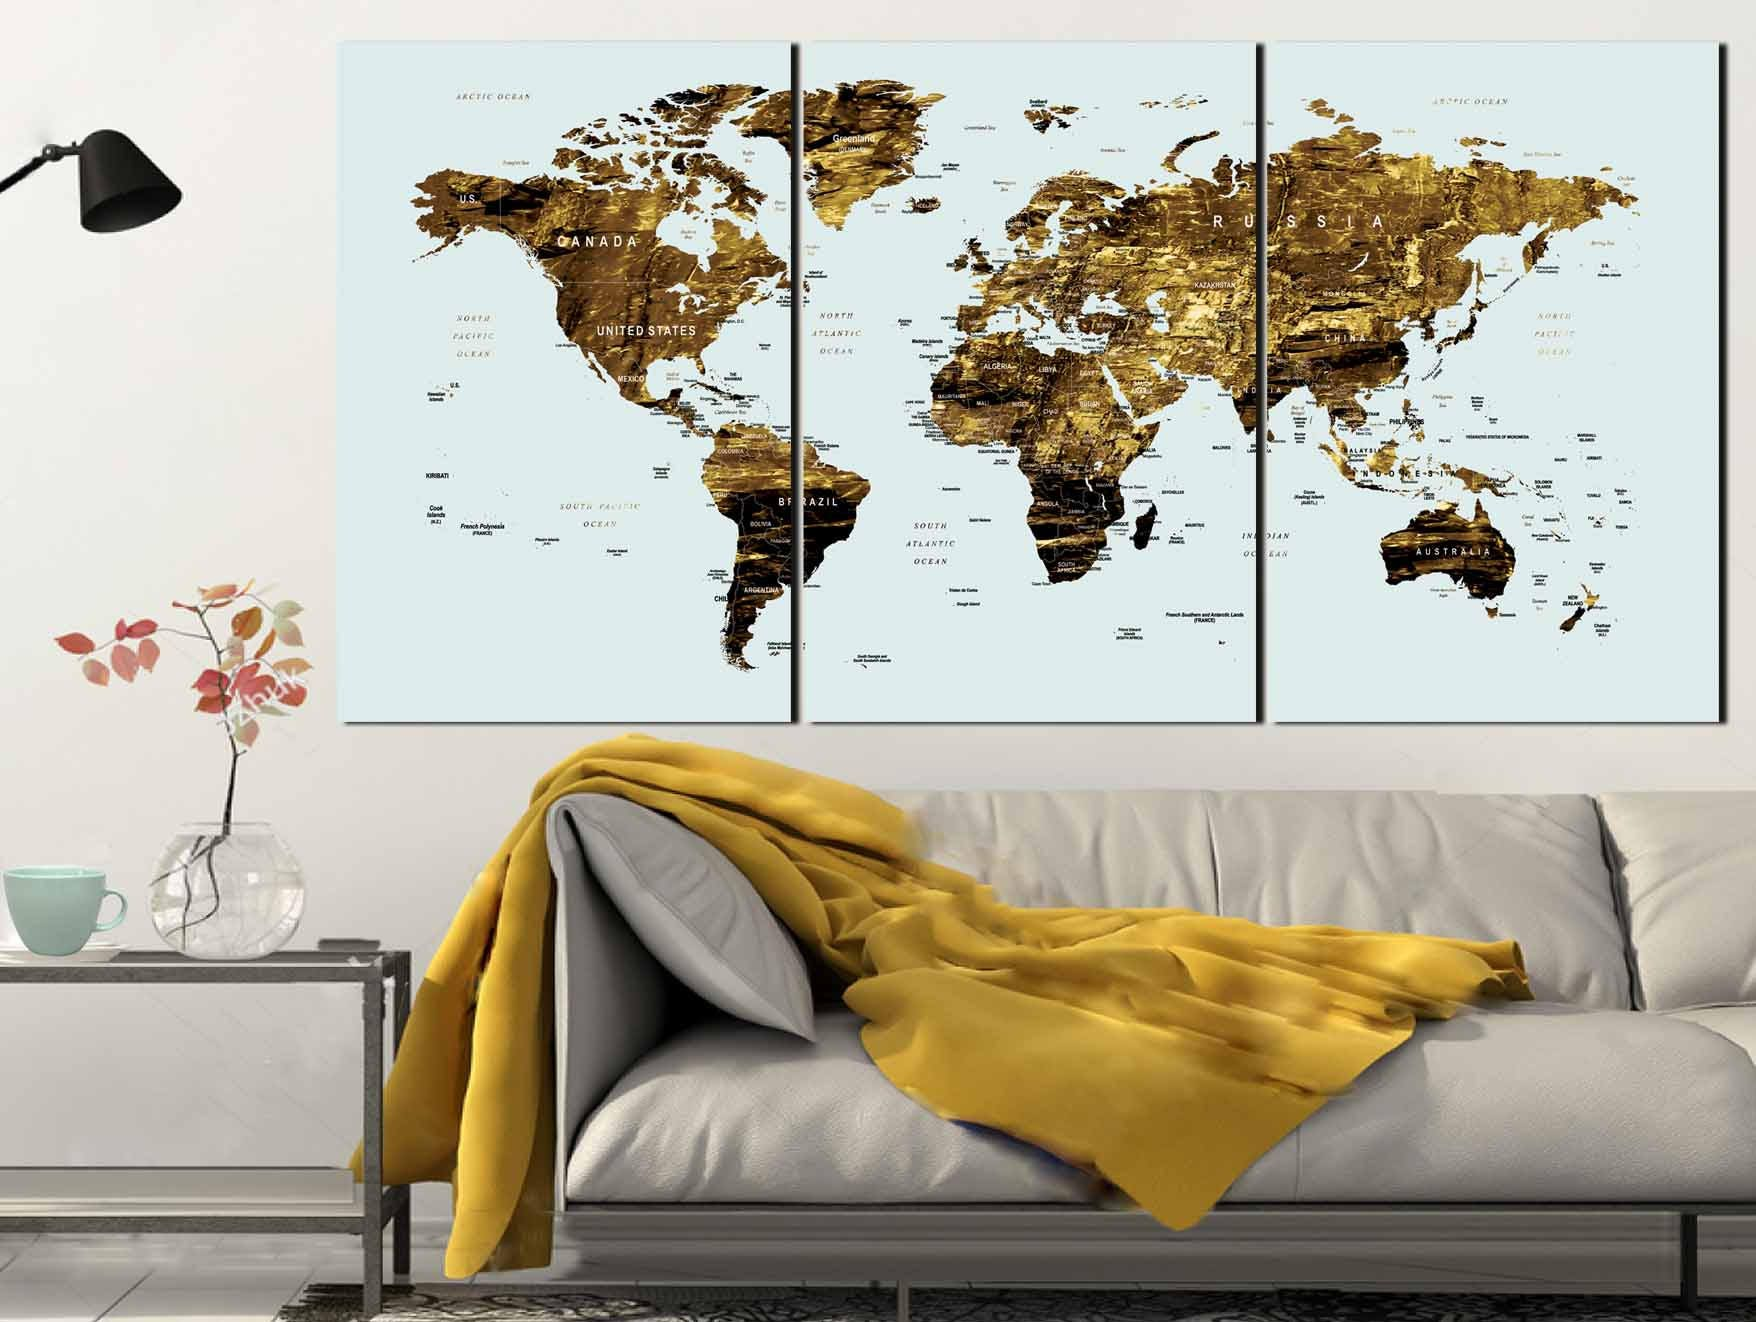 Gold color map artworld map canvas artworld map wall artlarge gold color map artworld map canvas artworld map wall artlarge world mapworld map push pinworld map printworld map artabstract map art gumiabroncs Gallery